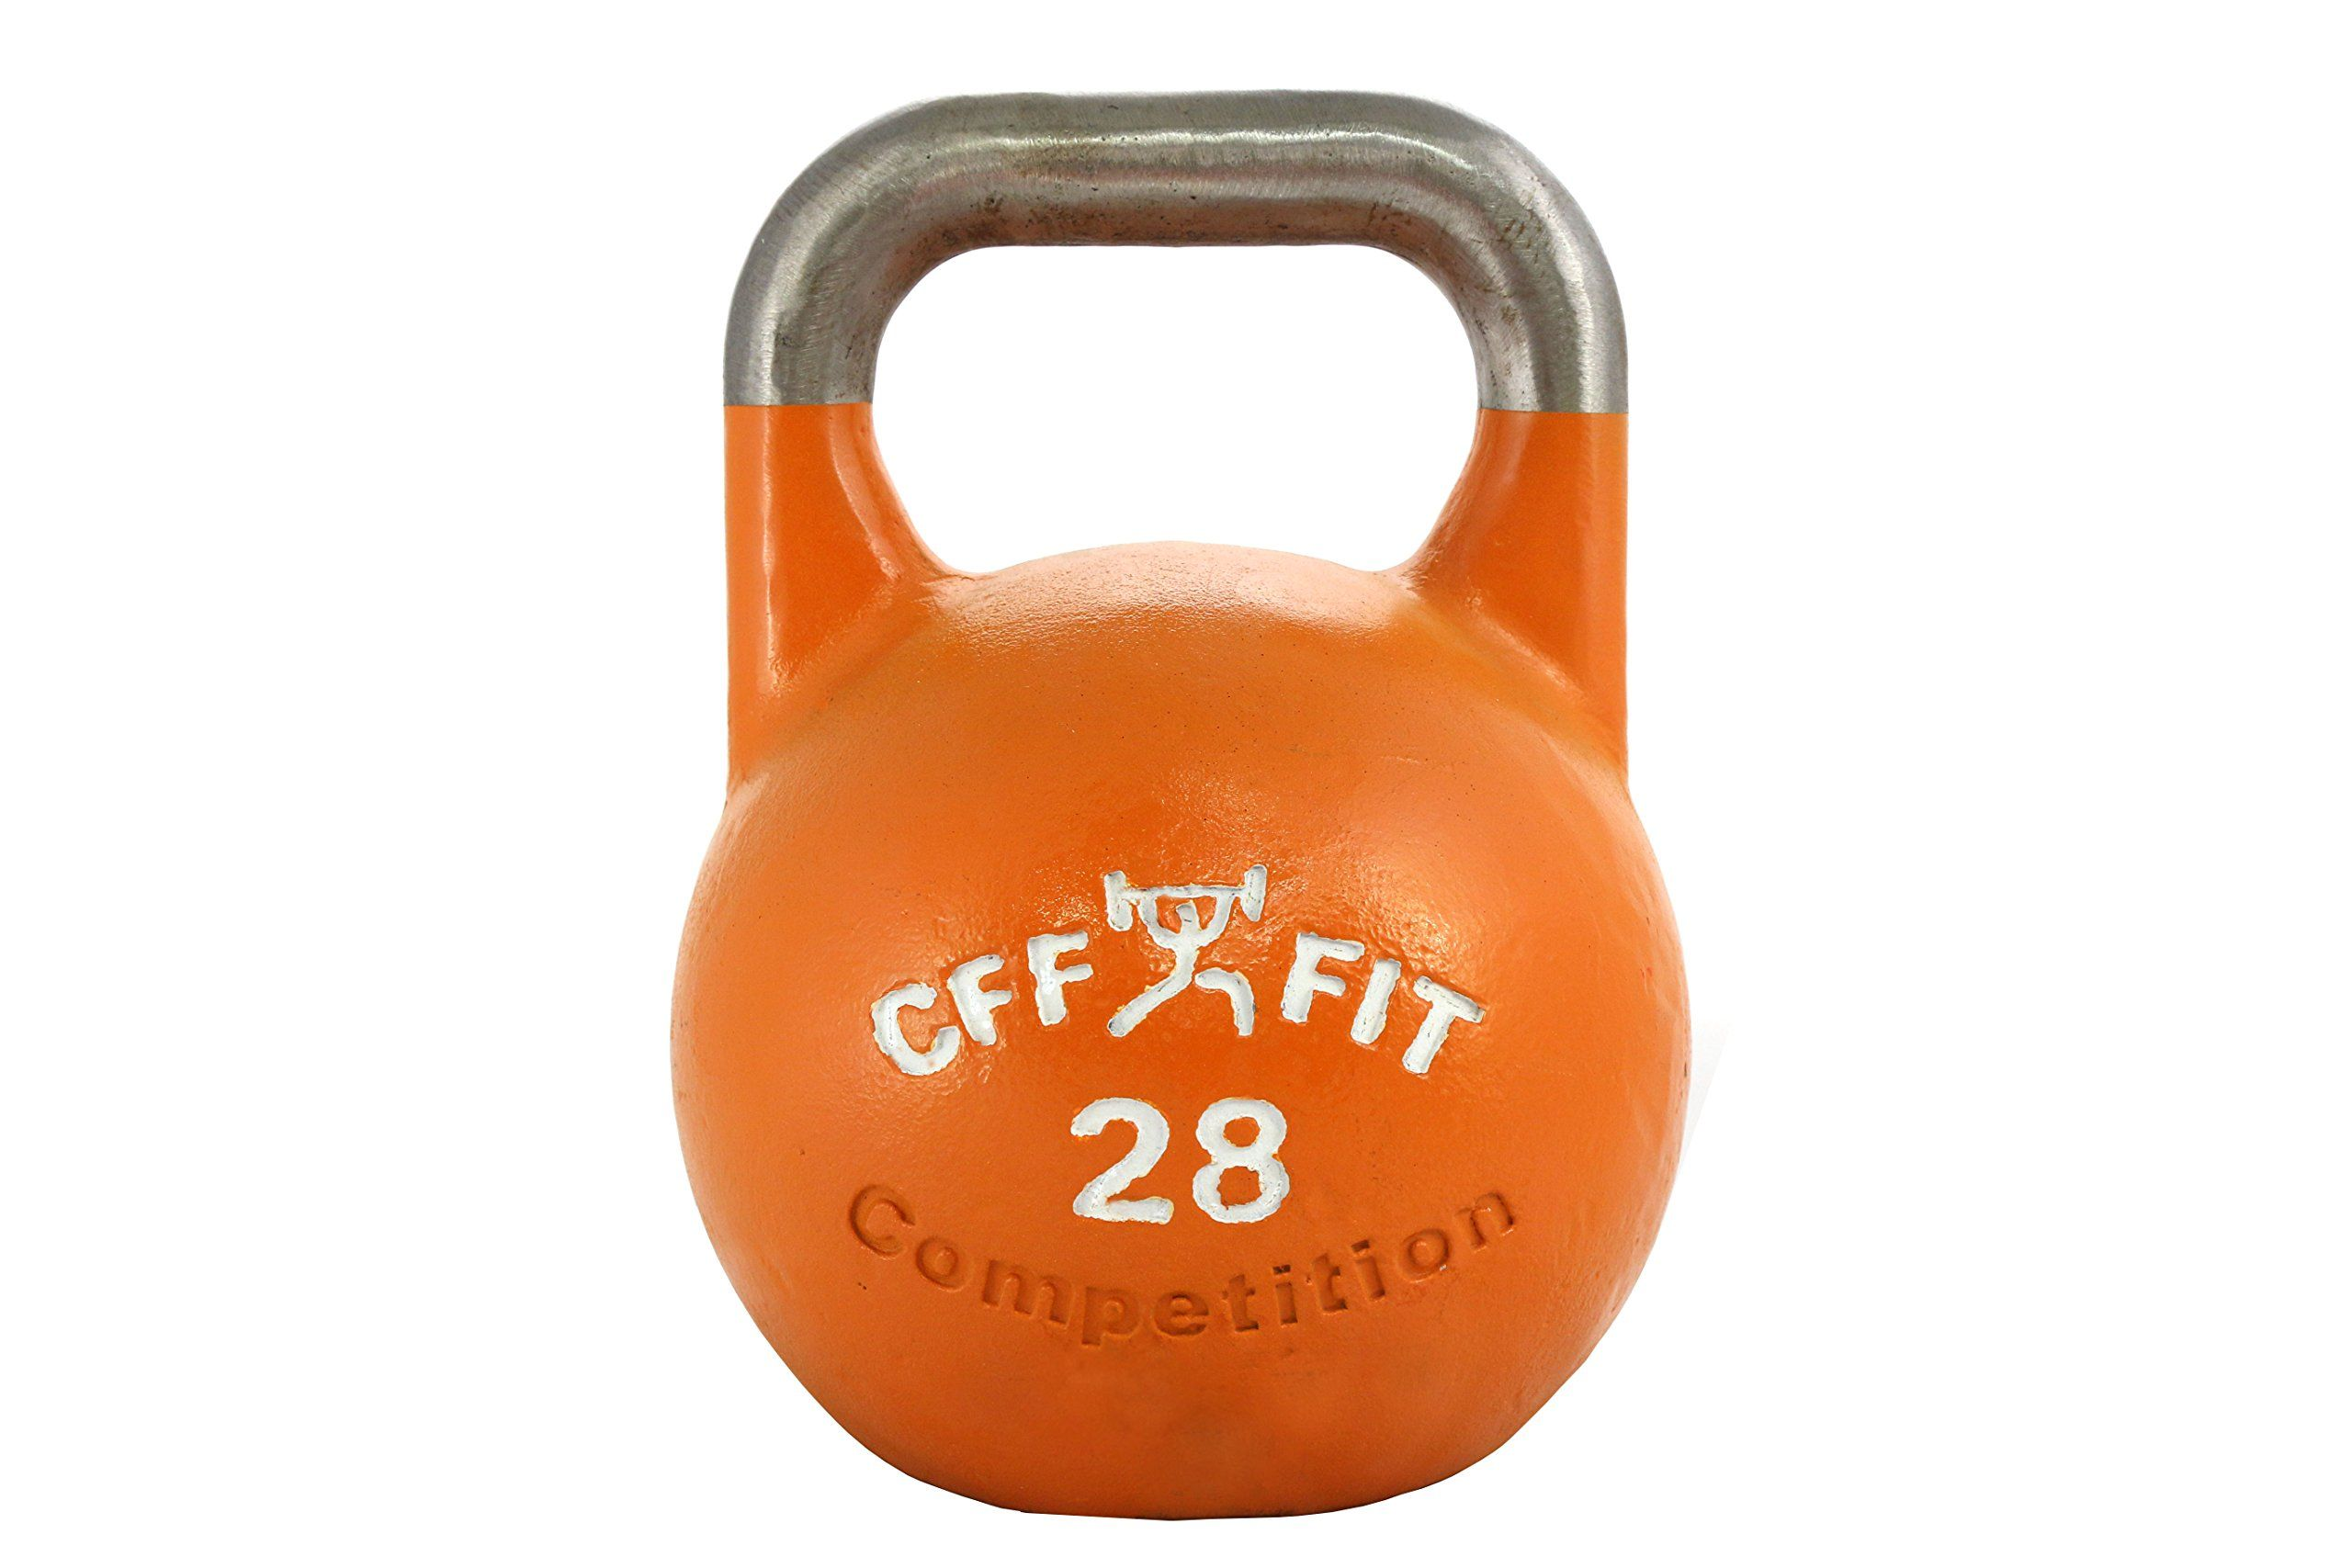 Cff Pro Competition Russian Kettlebell Orange 28 Kg Cff 28 Kg Pro Competition Russian Kettlebell Girya Kettlebell Russian Kettlebell Competition Kettlebells